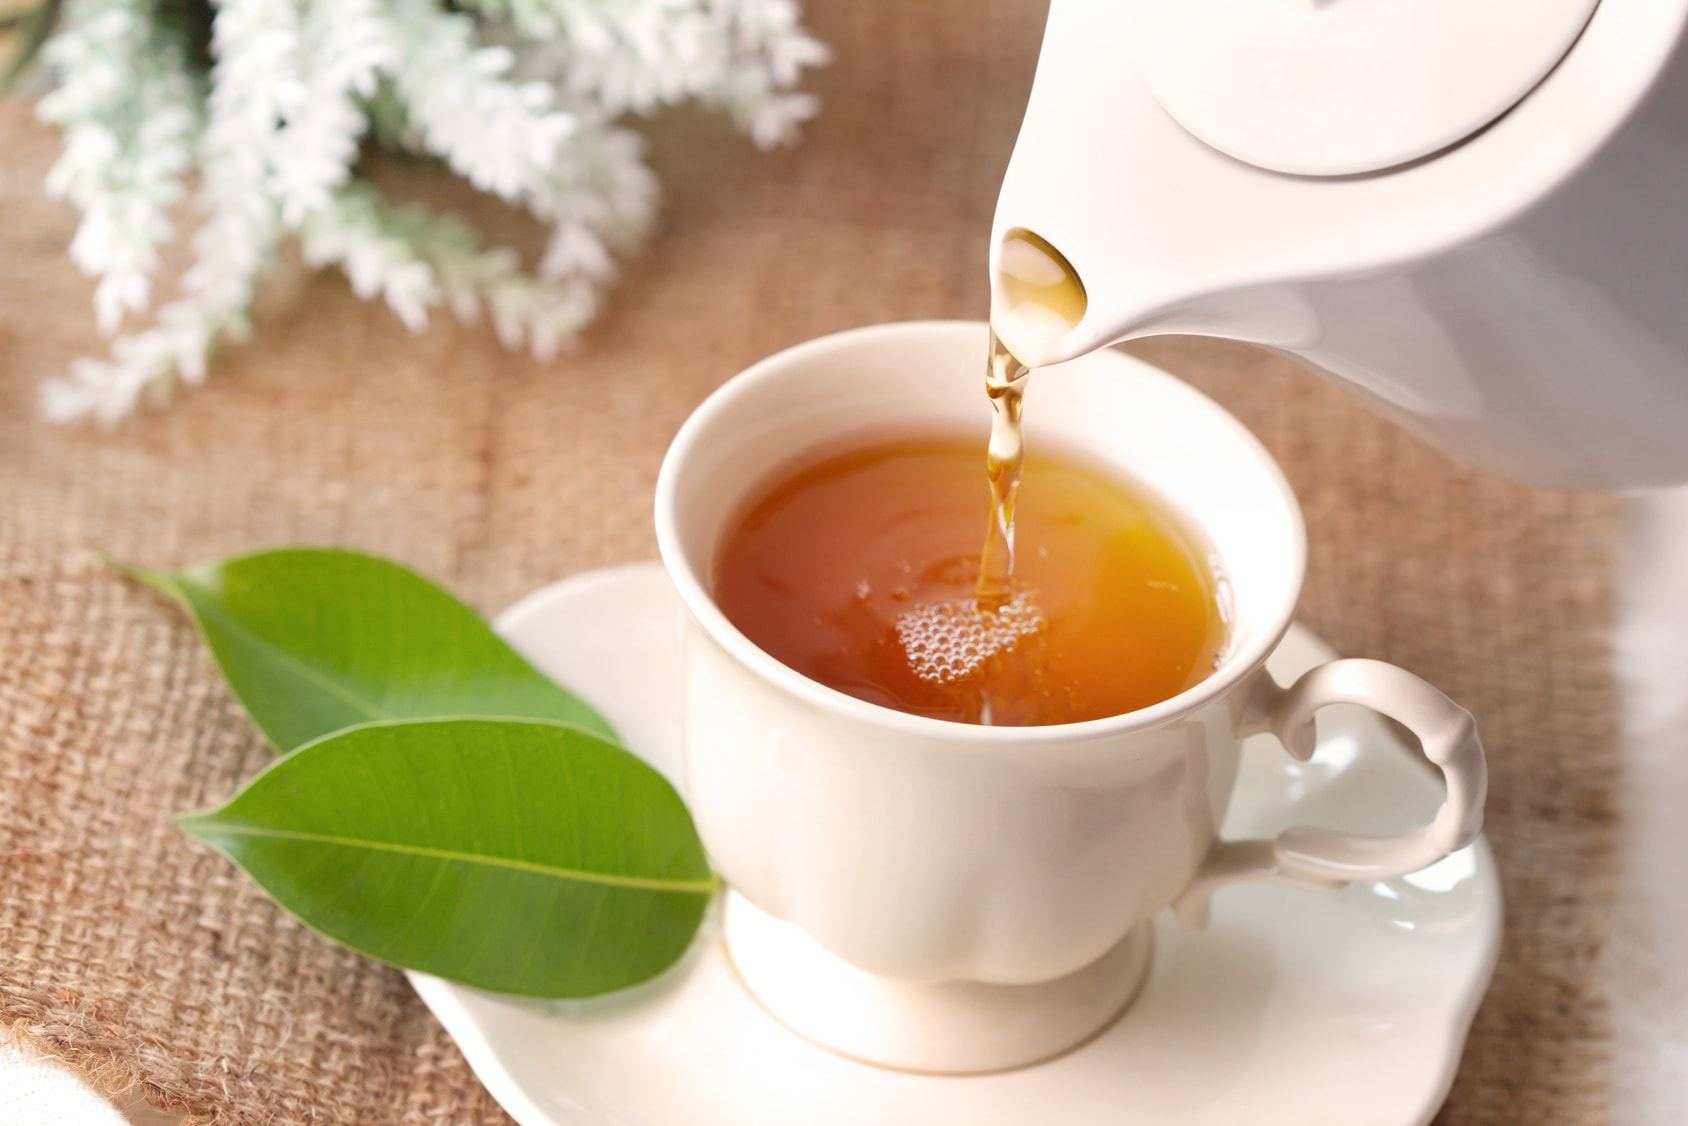 7 medicinal benefits of tea for older adults